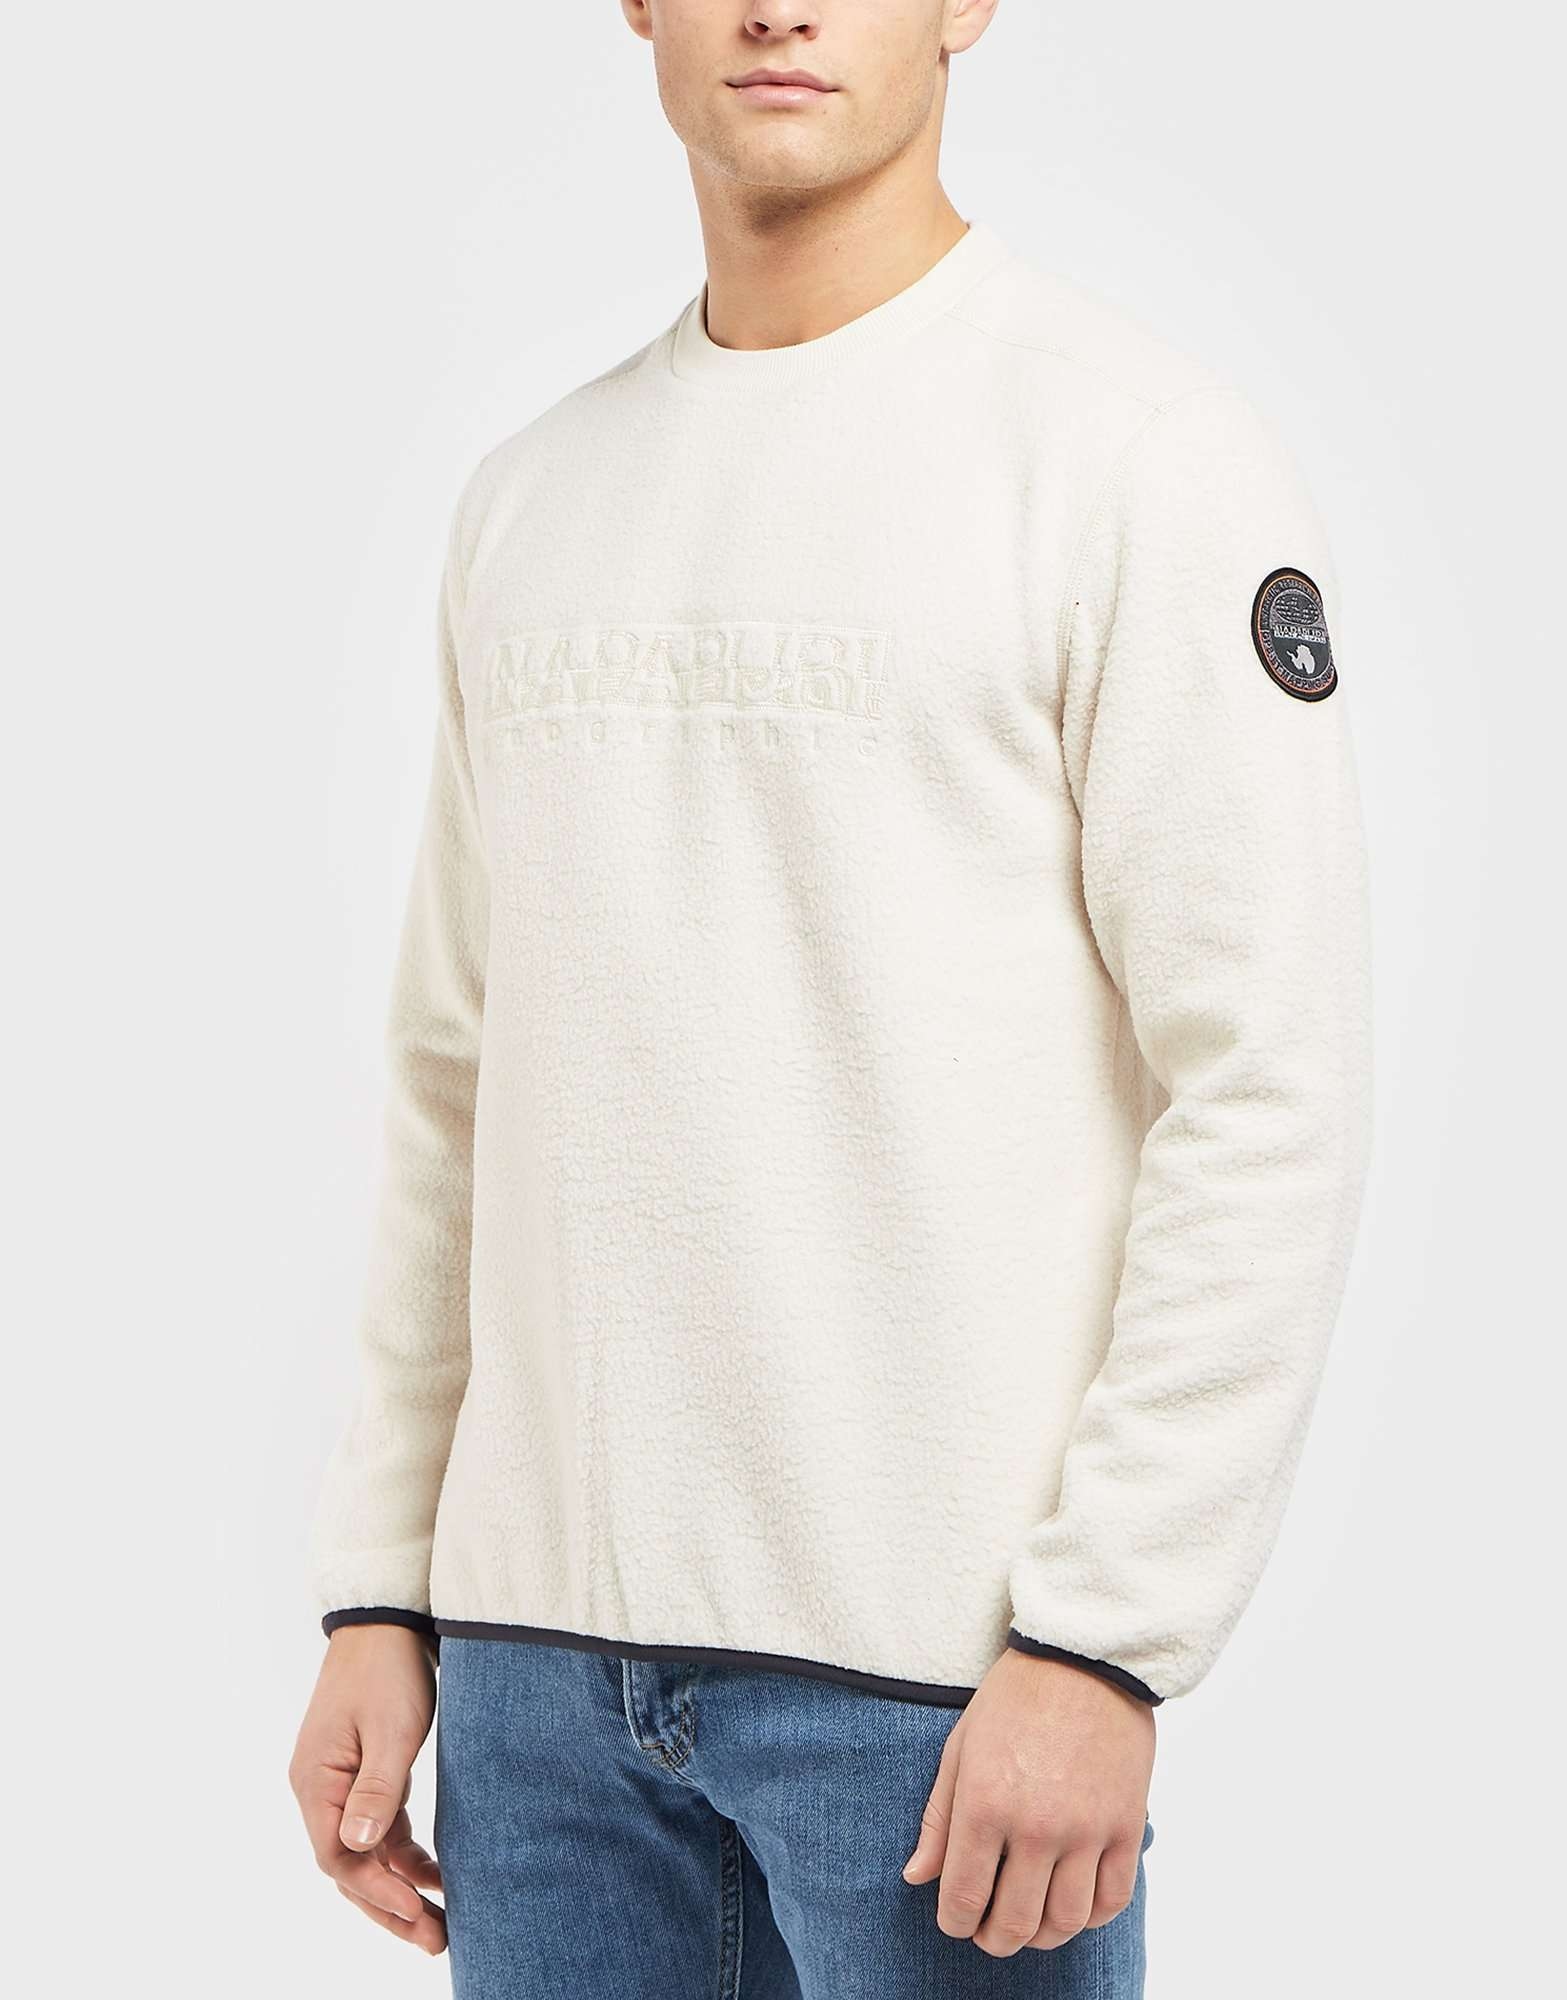 Napapijri Tame Fleece Sweatshirt